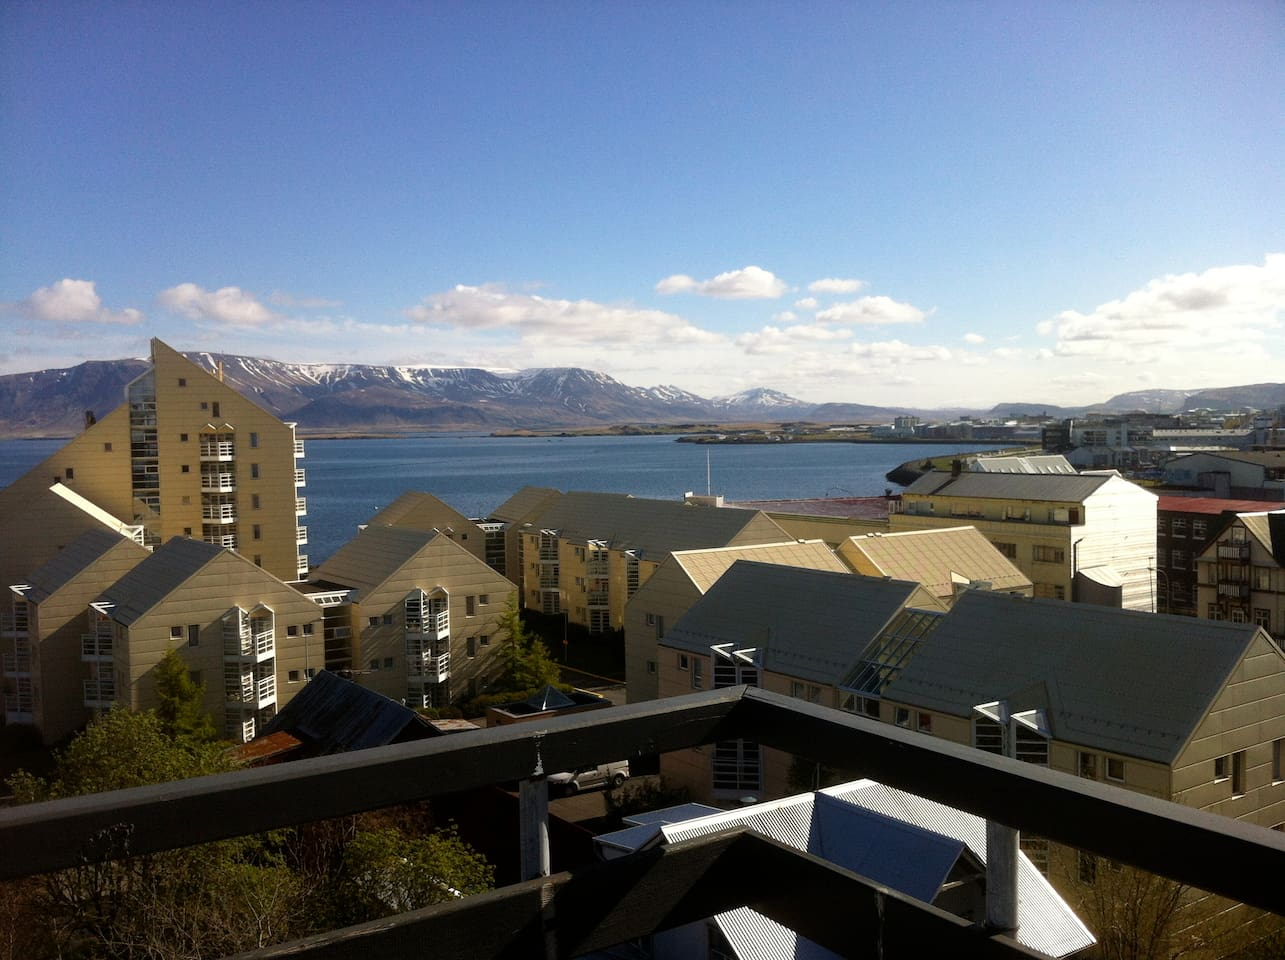 View from the apartment over the Fjord in Reykjavik downtown